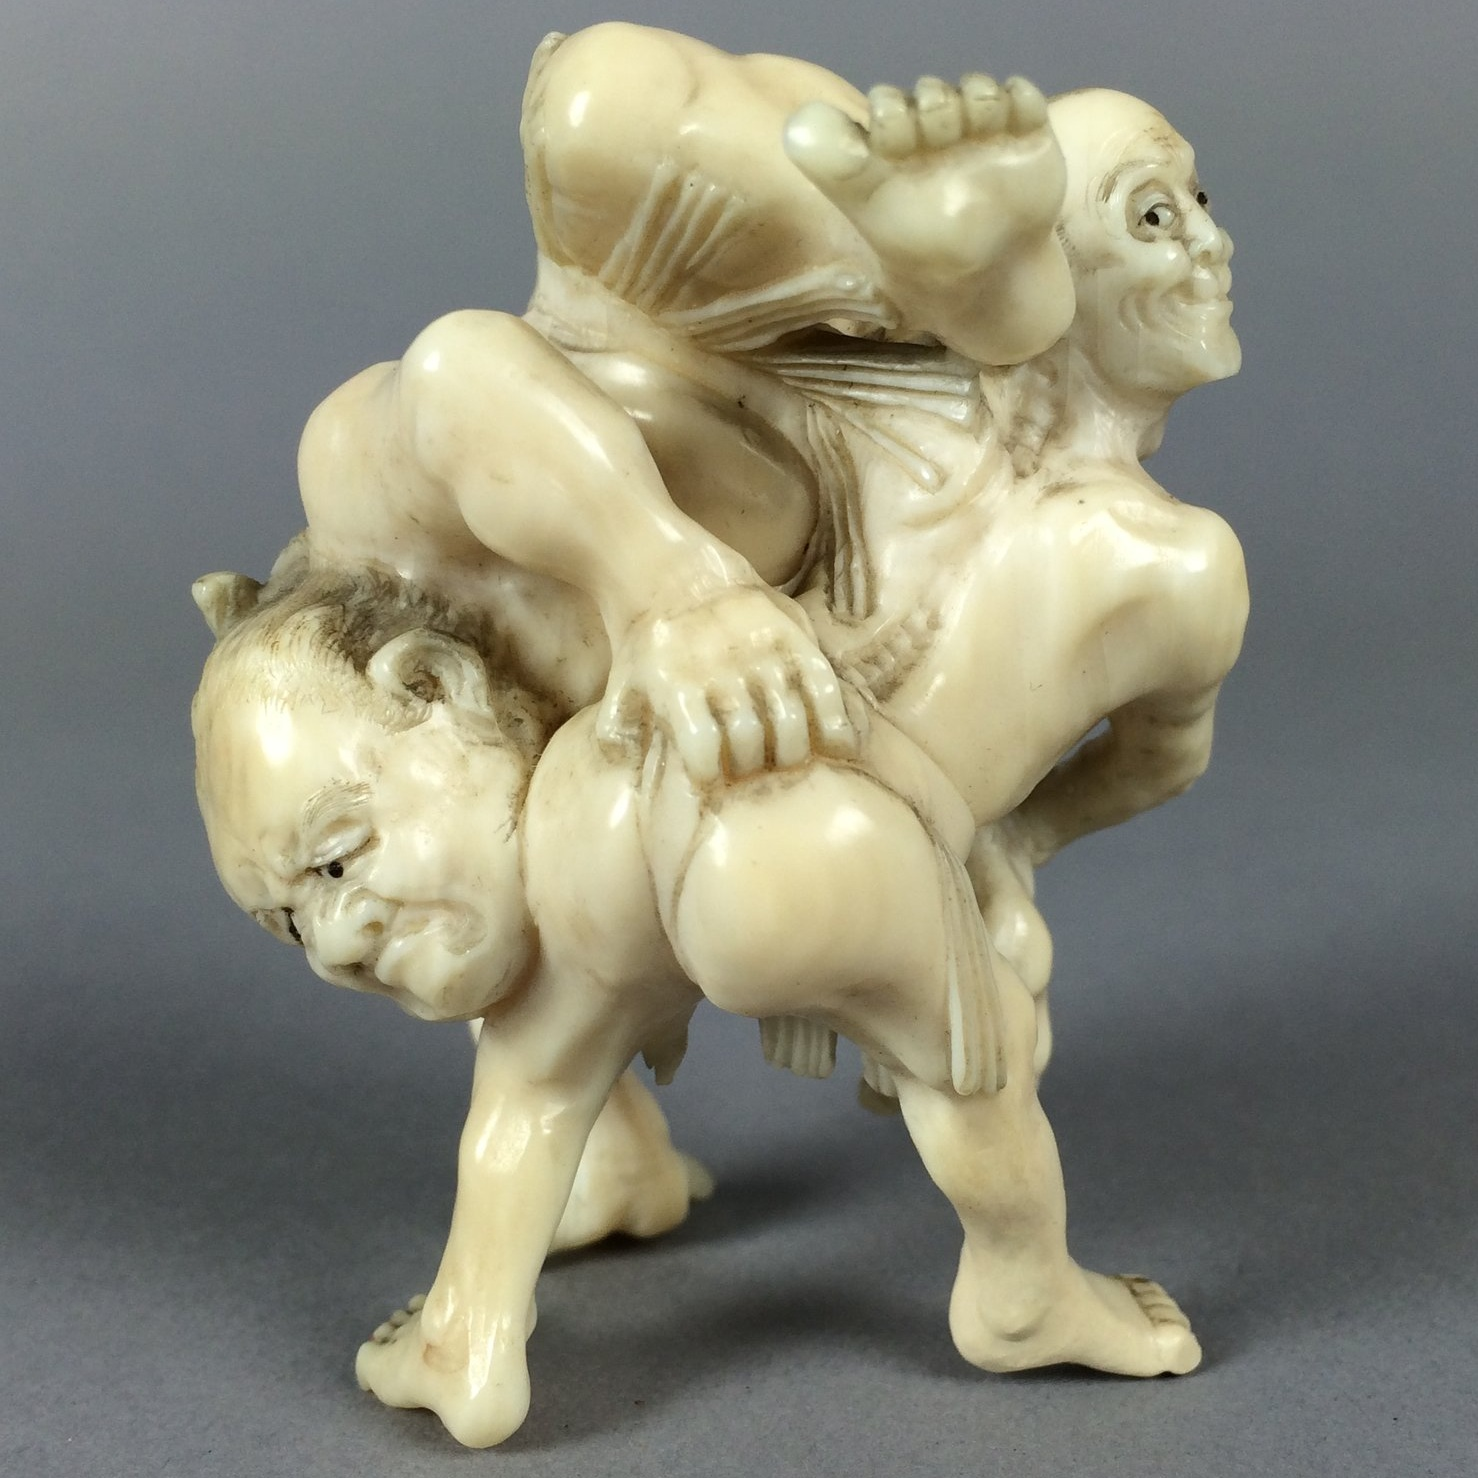 Netsuke - After Treatment